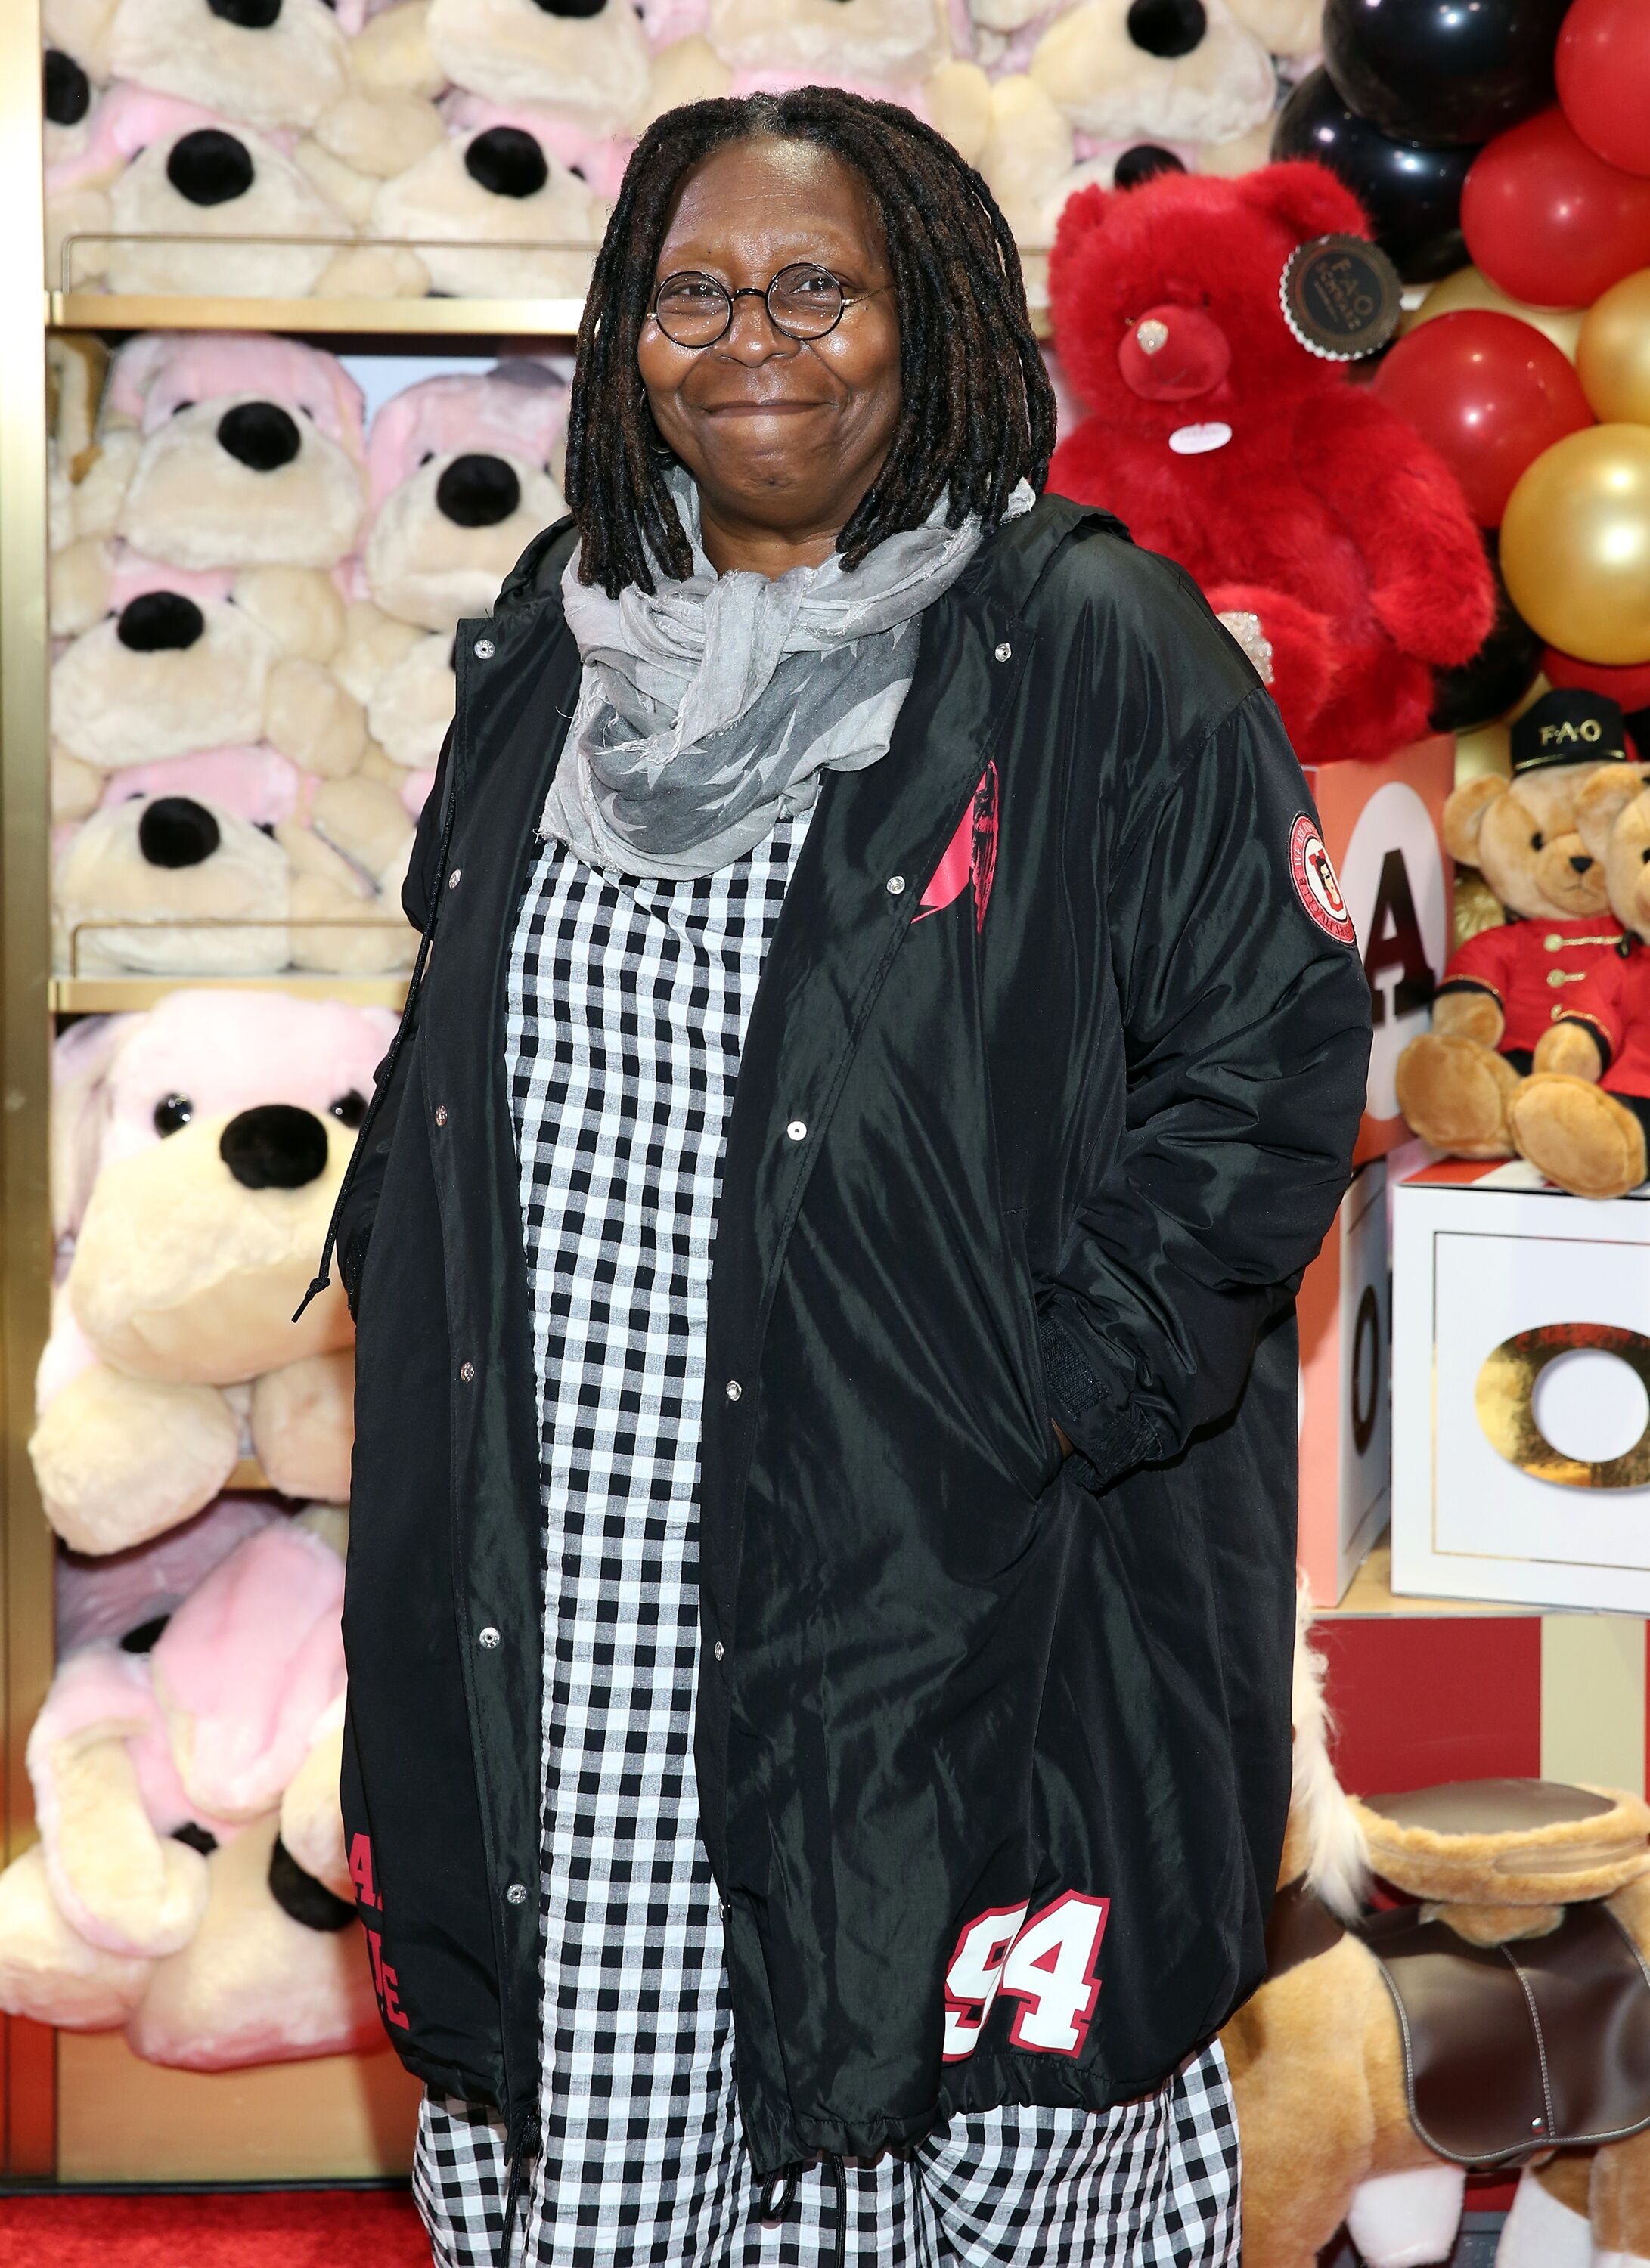 Whoopi Goldberg at the FAO Schwarz Grand Opening Event at Rockefeller Plaza on November 15, 2018, in New York City | Photo: Monica Schipper/Getty Images